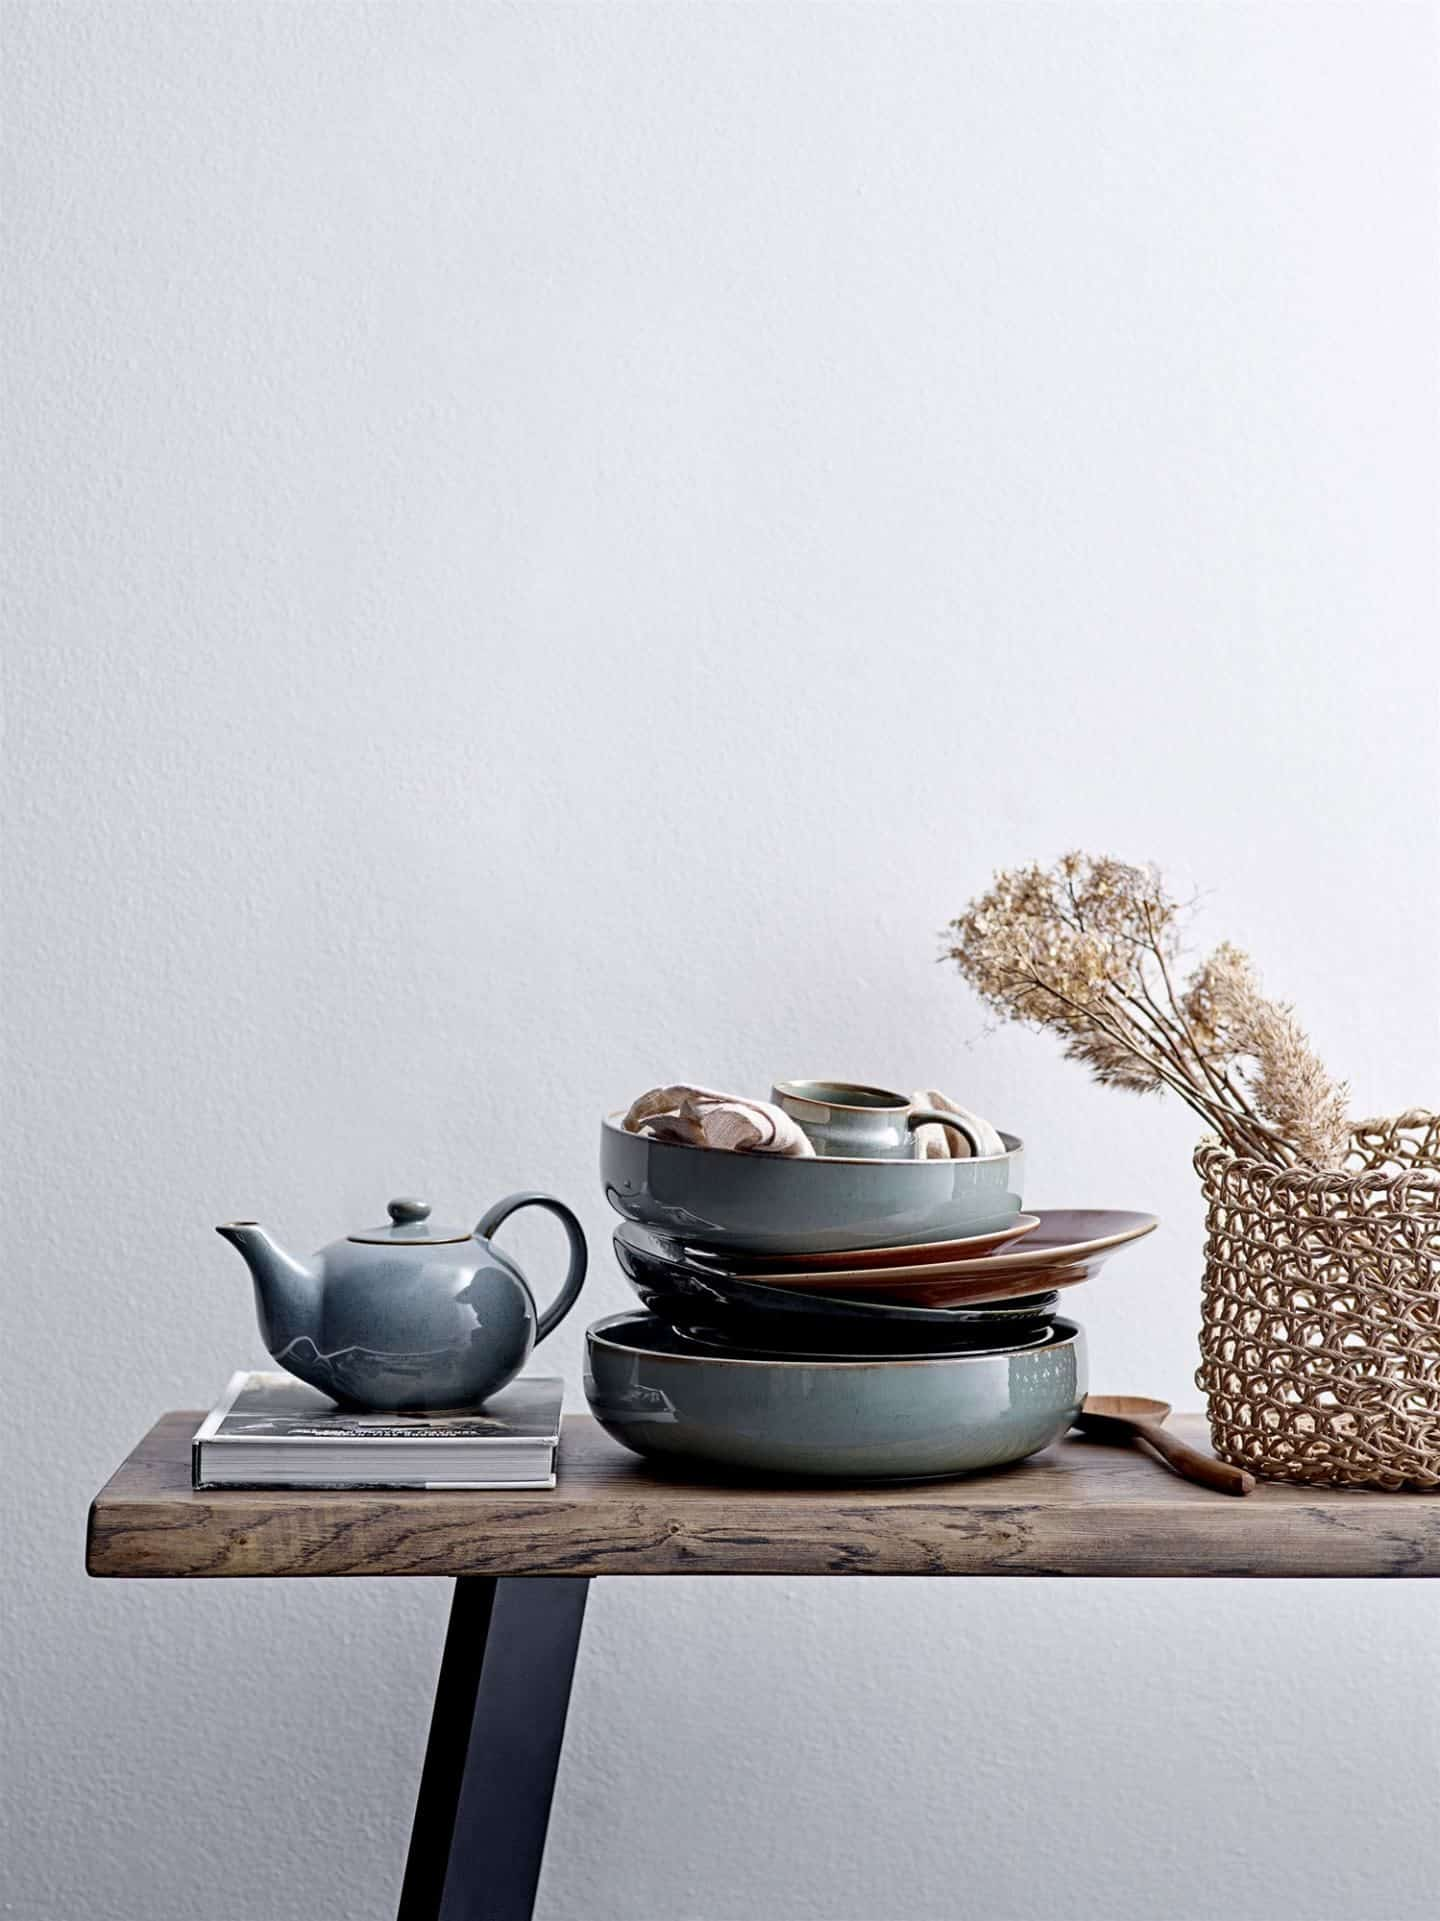 Shekåbba The Danish Home stocks a range of Danish homewares. A table stacked high with blue ceramic plates and a tea pot